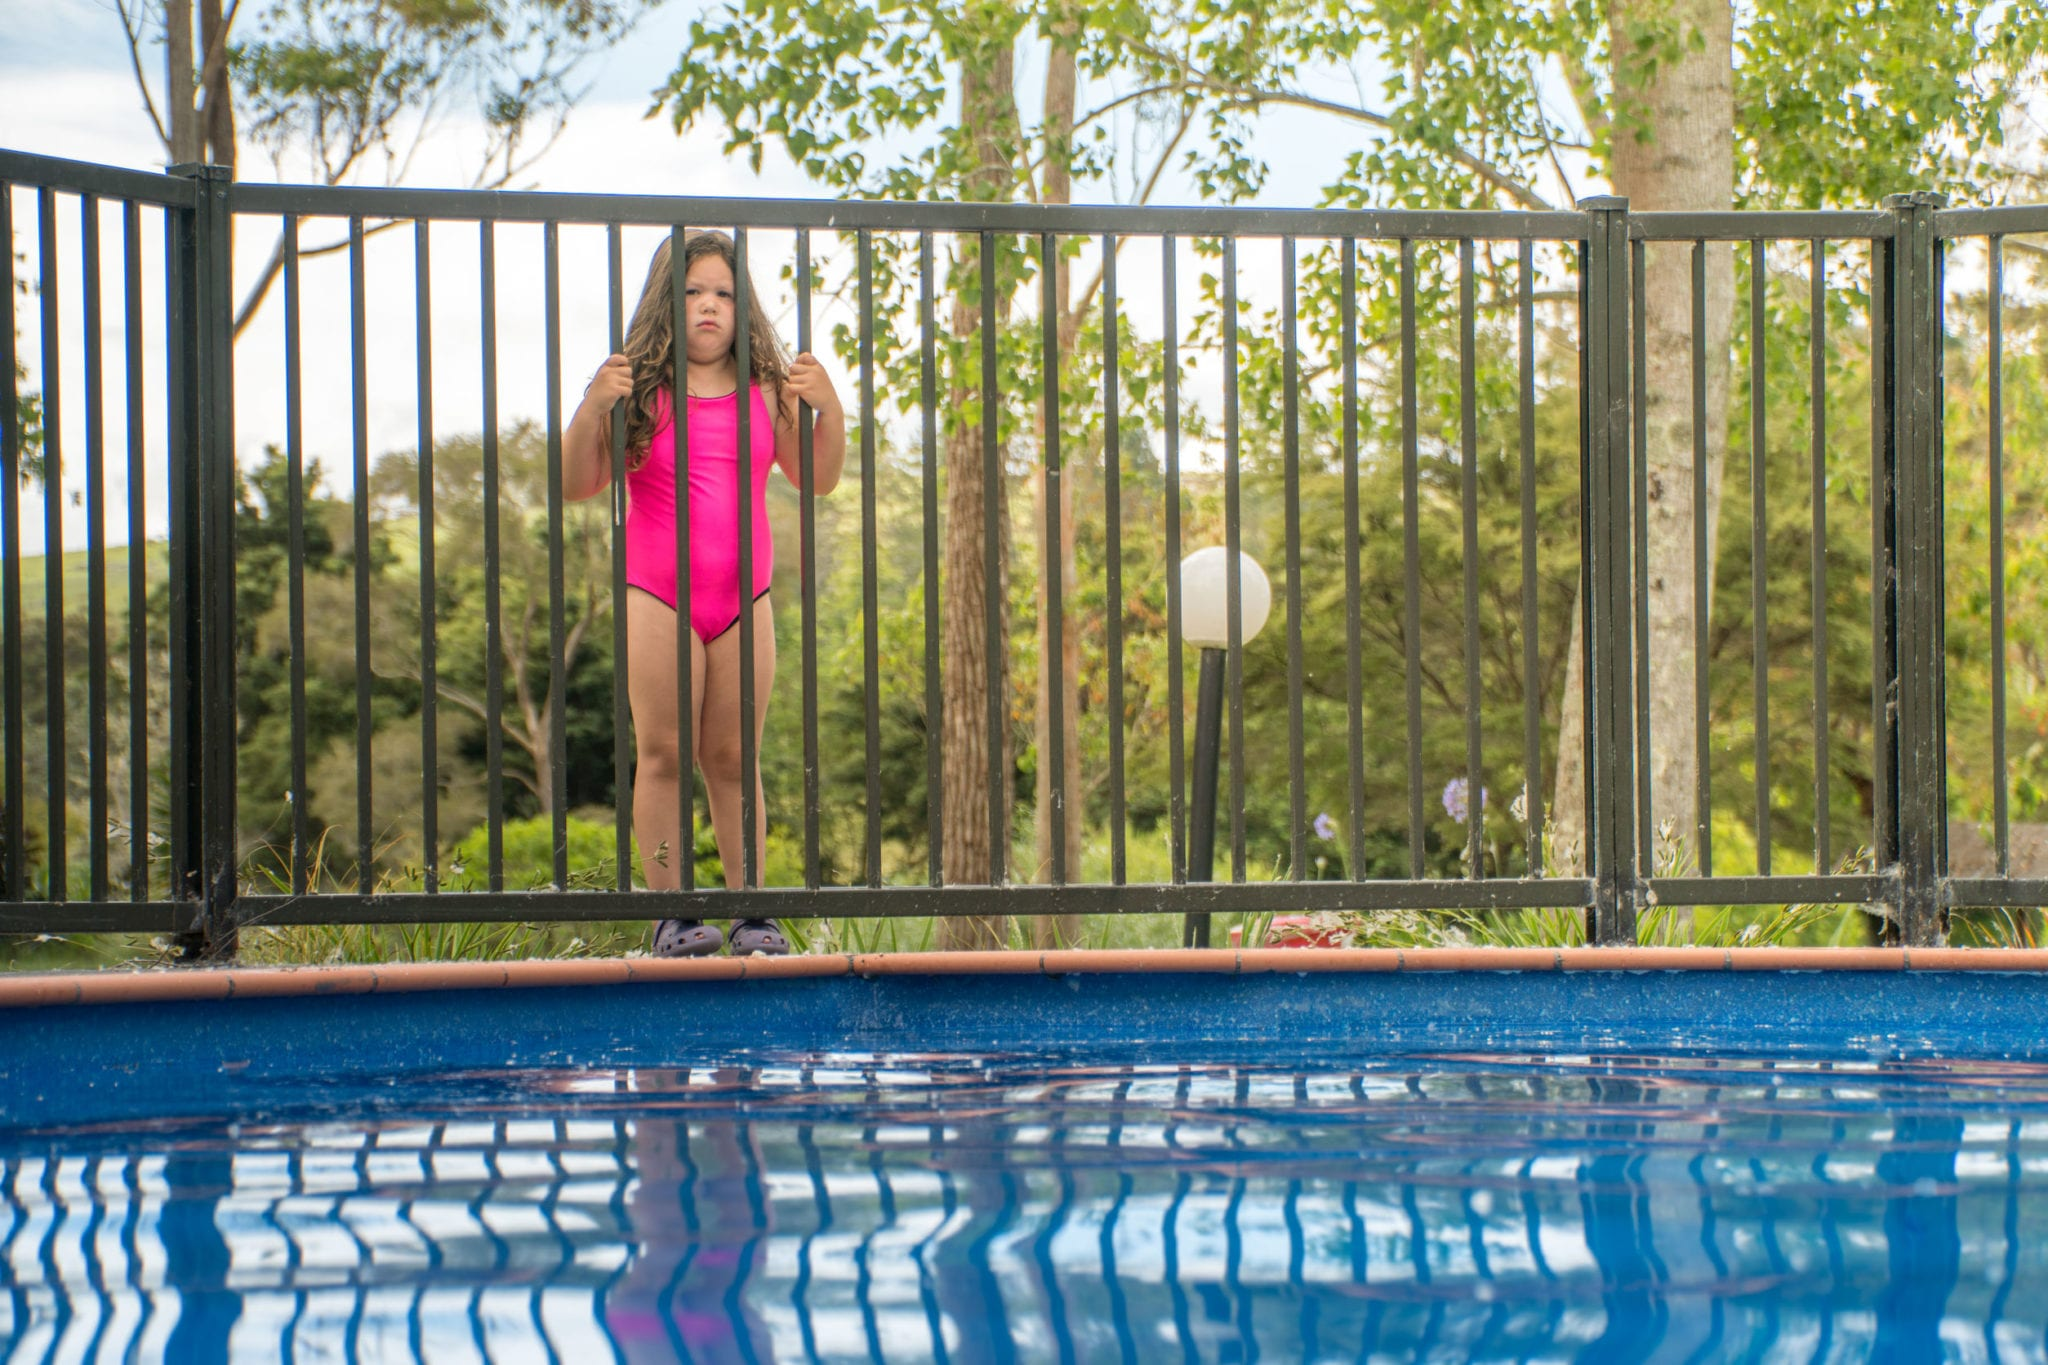 Fort Worth Pool Accident Lawyer